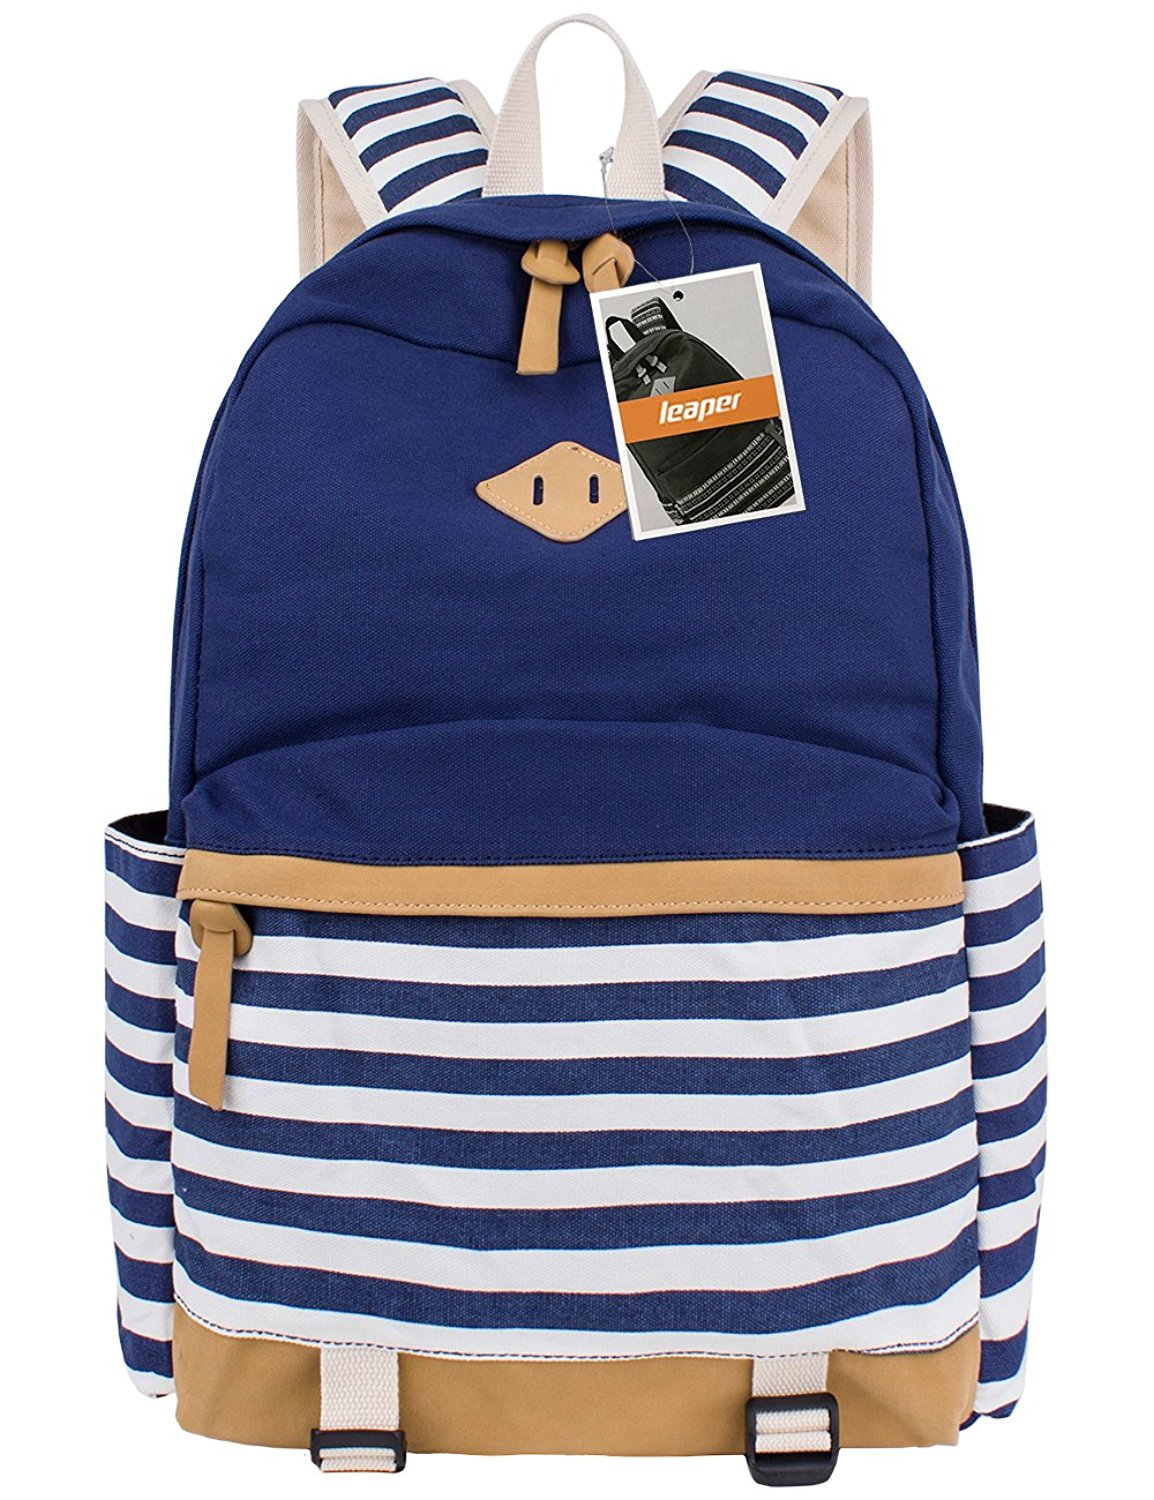 2e6f86db29 Leaper Cute Thickened Canvas School Backpack Laptop Bag Shoulder Daypack  Handbag